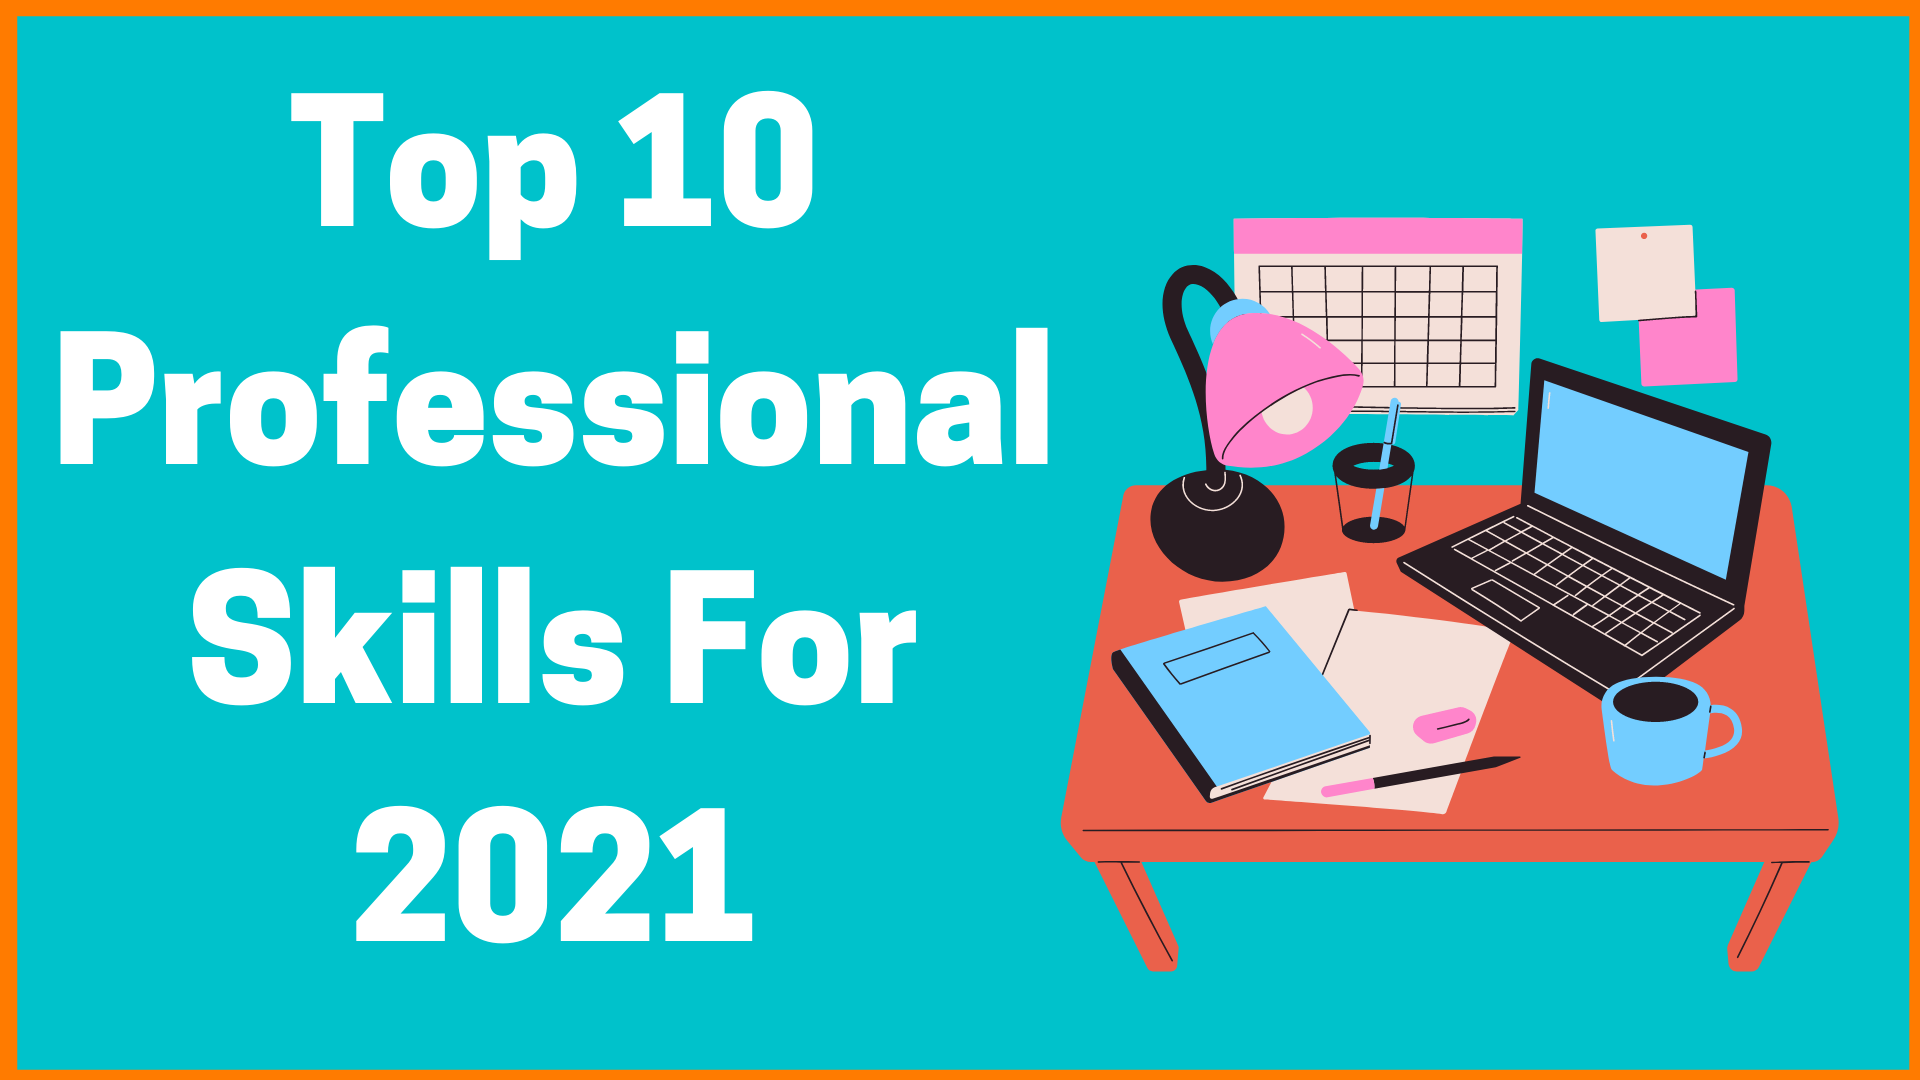 Top 10 Professional Skills For 2021